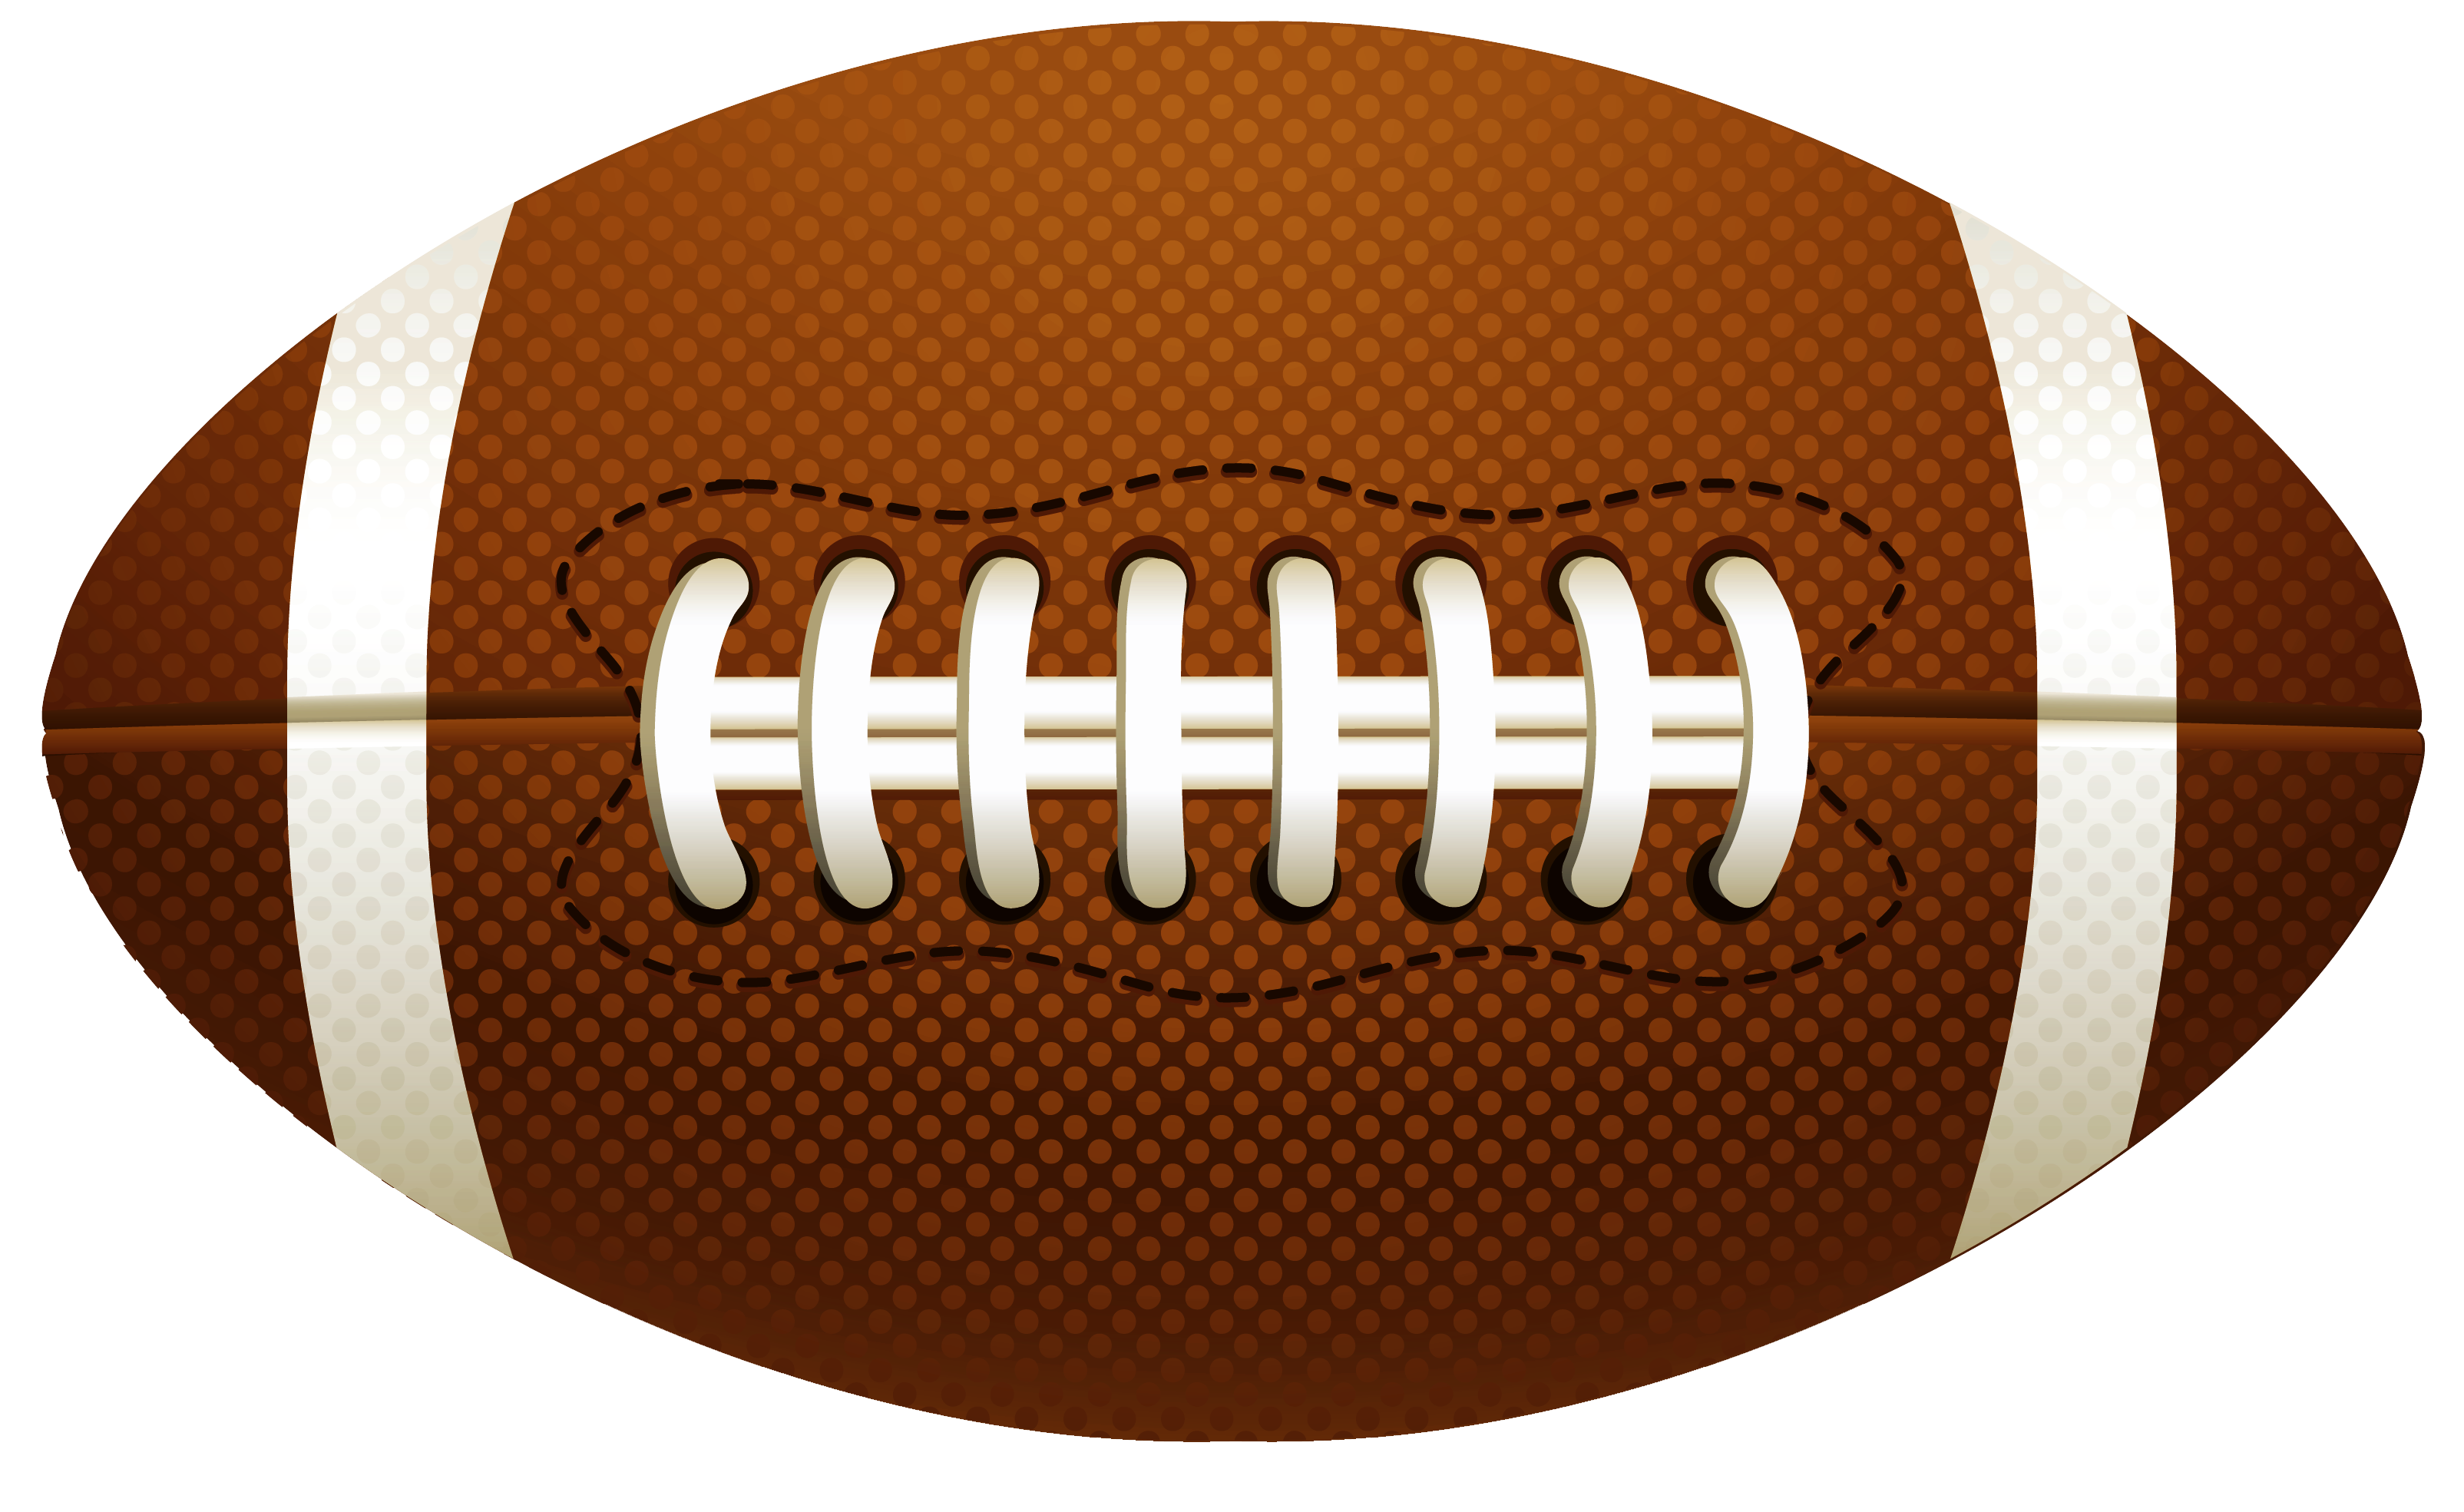 Motivation clipart football practice. American ball png vector